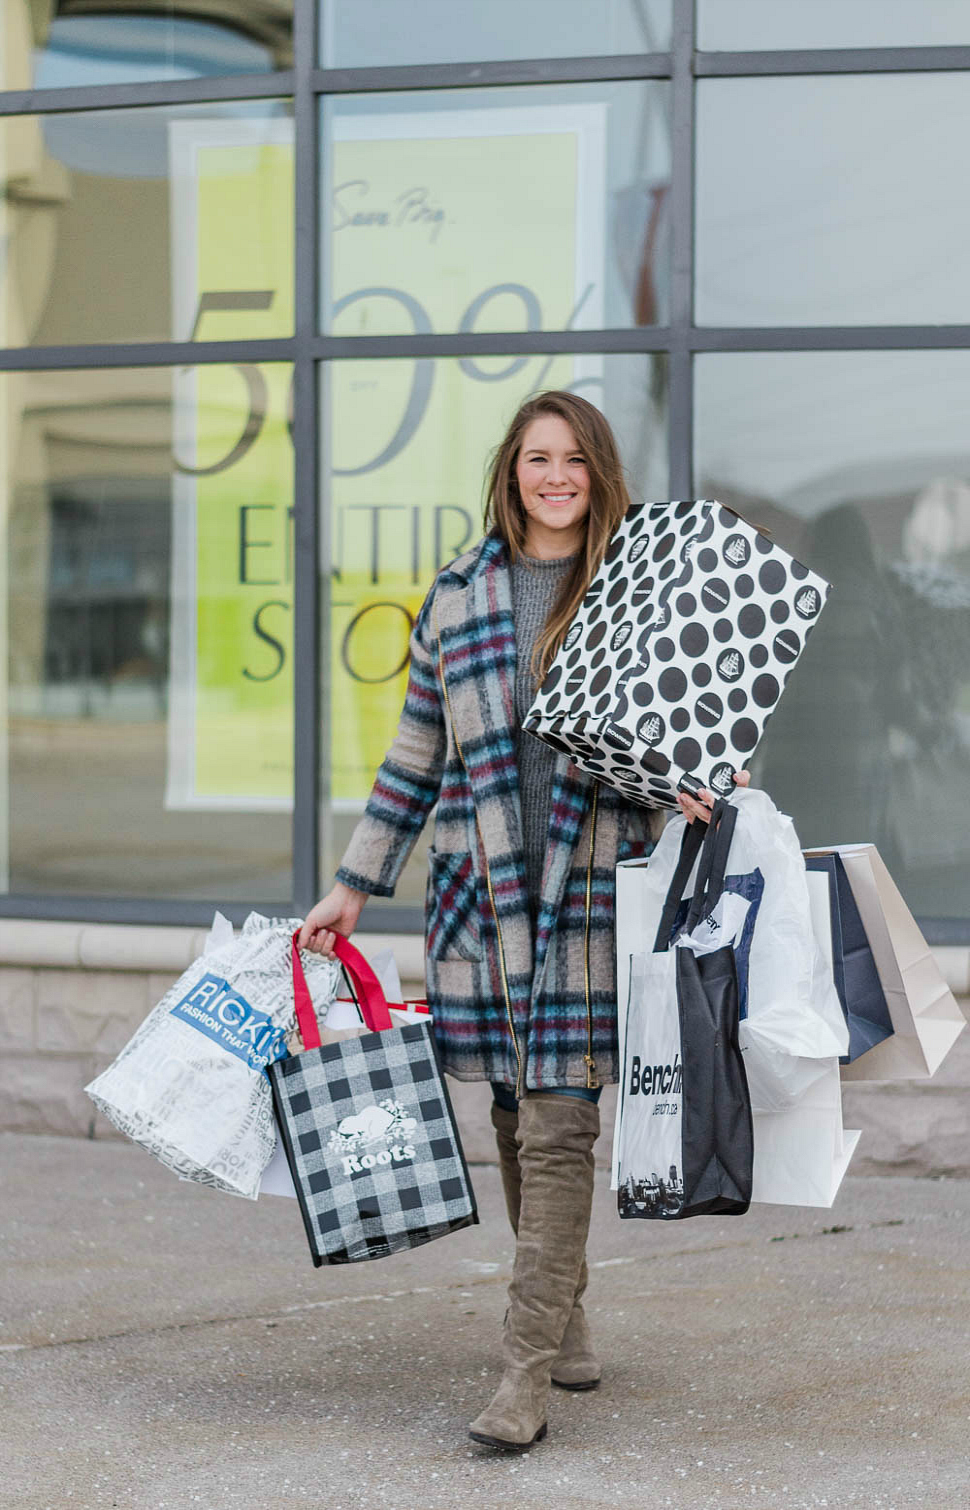 Windsor-crossing-outlets-personal-shopping-windsor-personalshopper-rosecitystyleguide